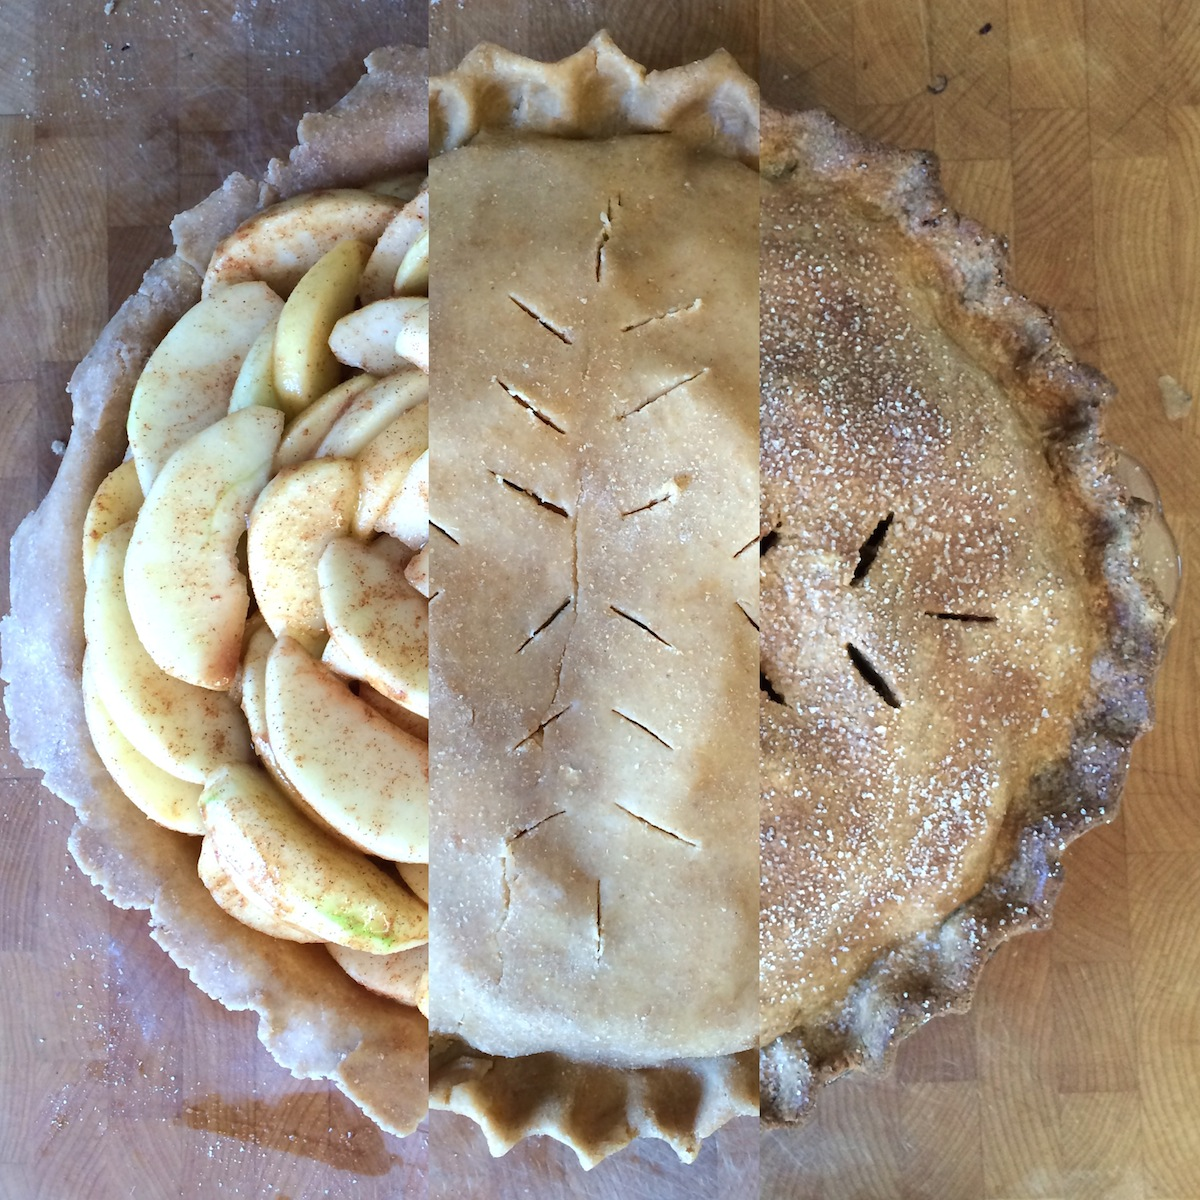 ... on pie crusts one is that the crust should be a neutral vessel that